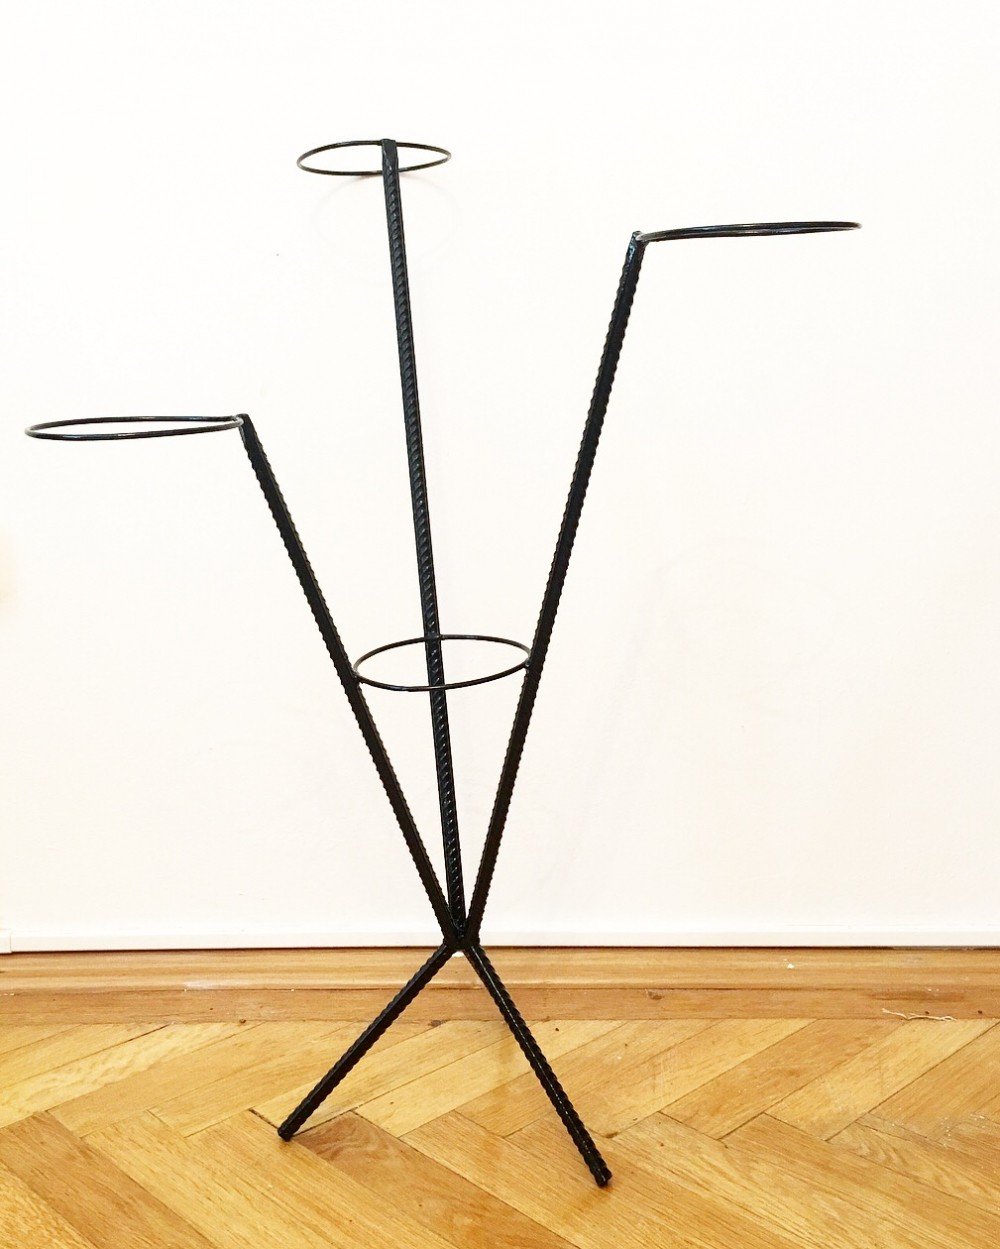 Black wire flowerstand, 1960s